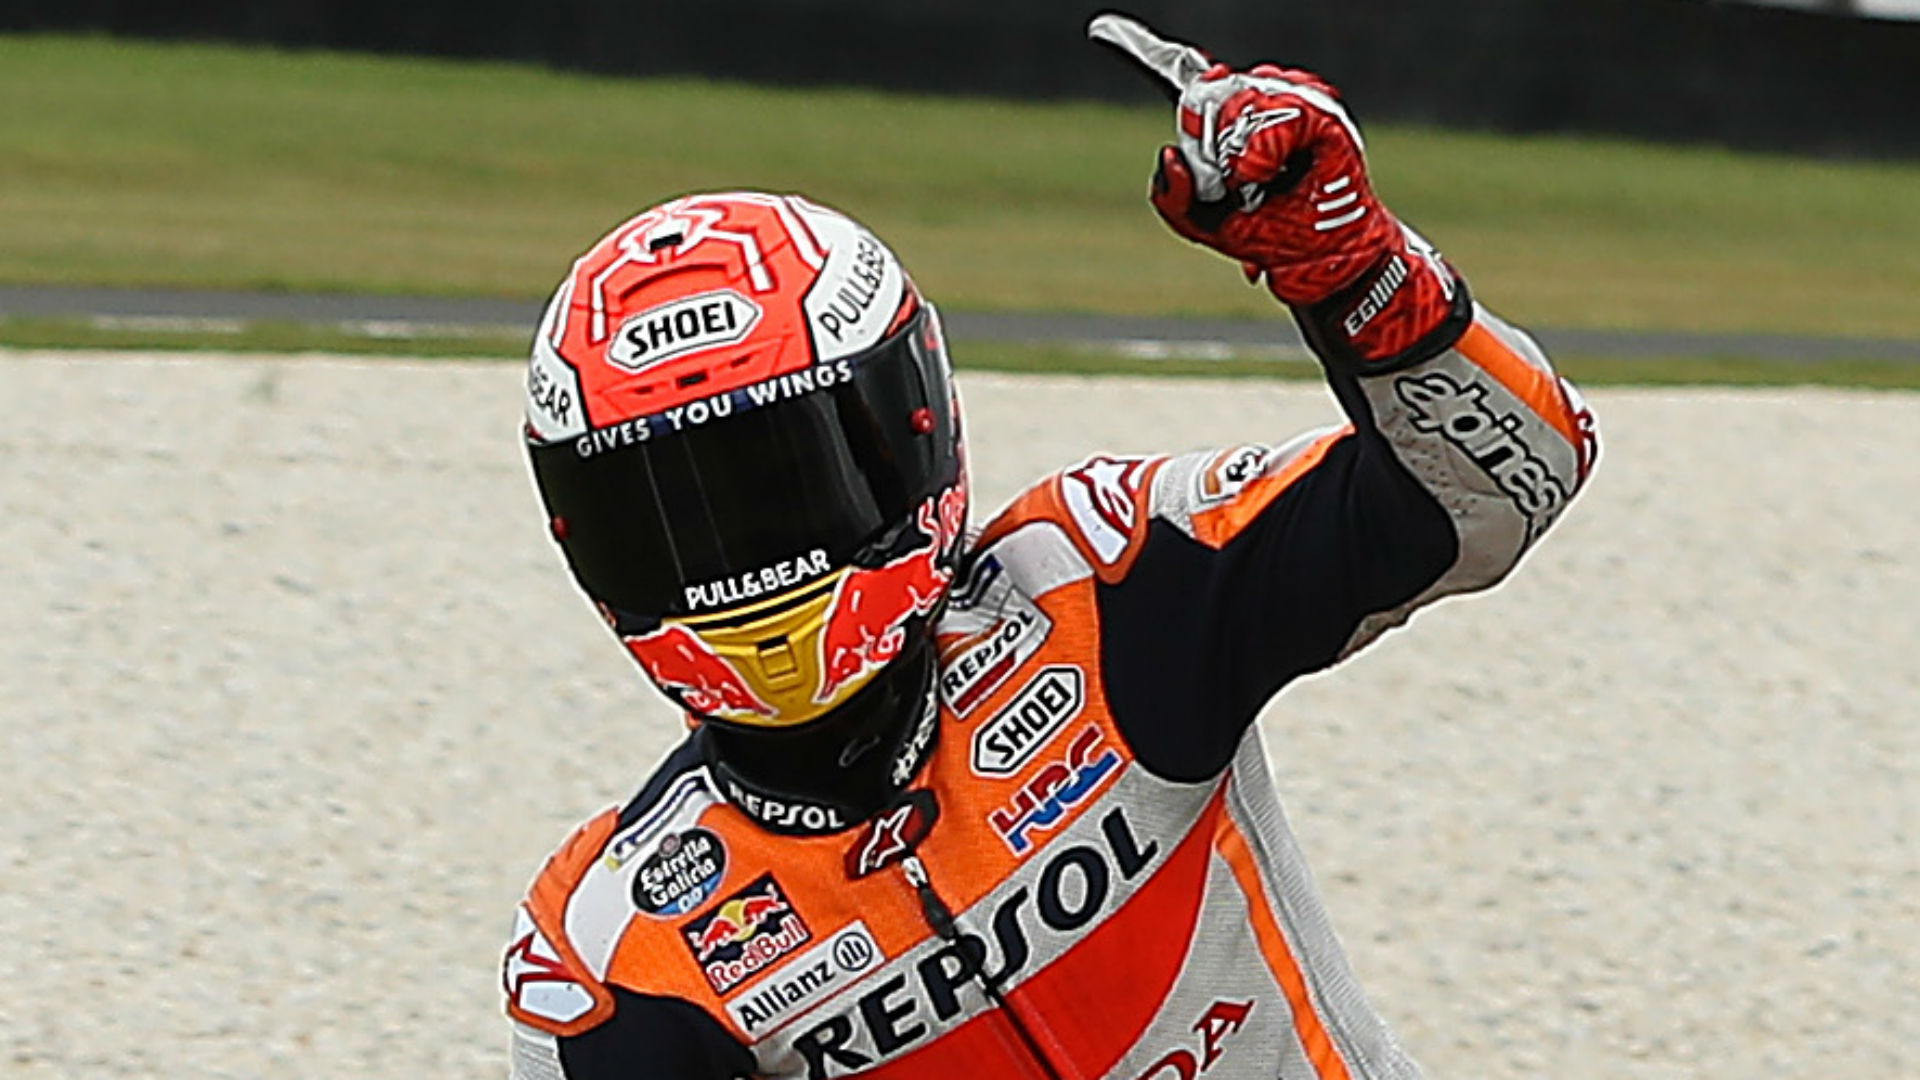 MotoGP Raceweek: Marquez seeks record points haul - Malaysian Grand Prix in numbers